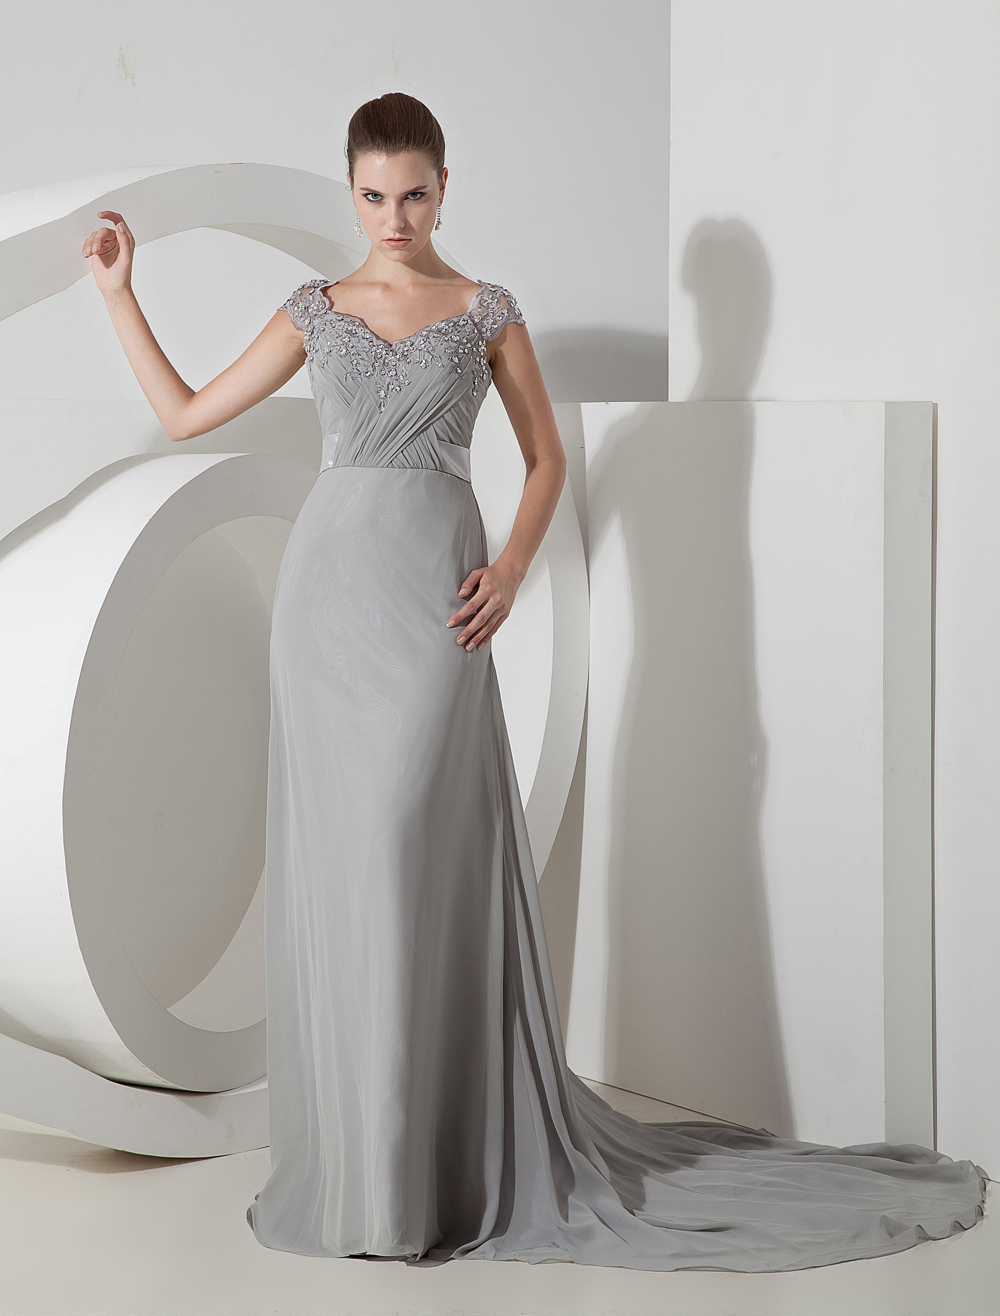 Silver Chiffon Applique Floor Length Evening Dress